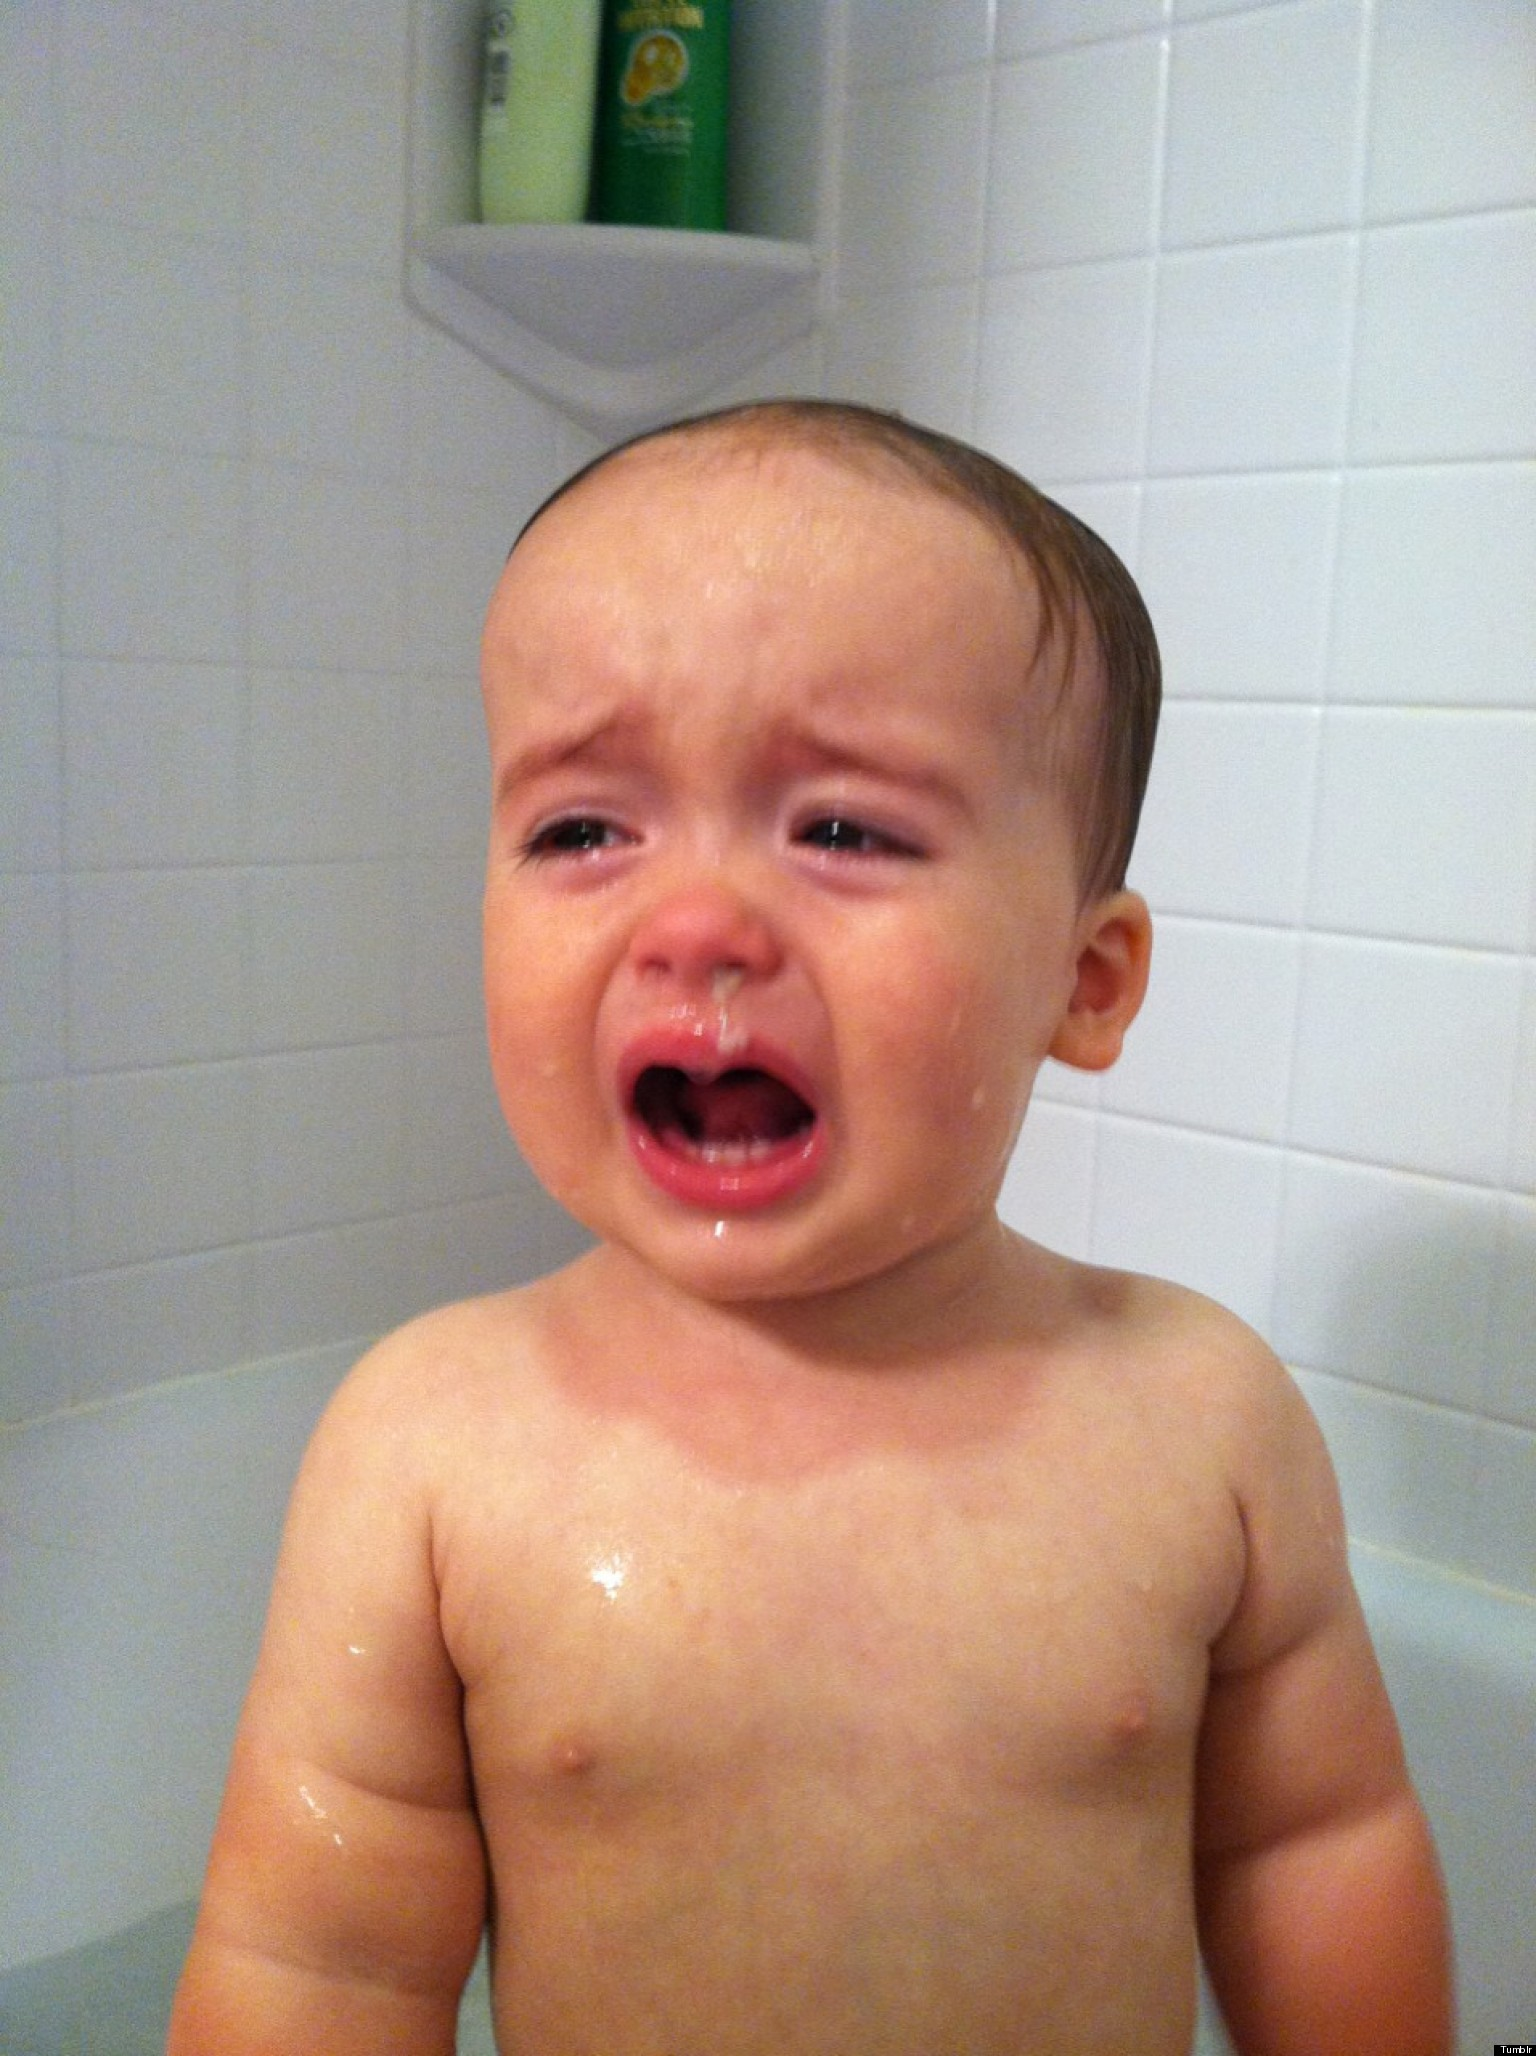 Babies Crying Reasons My Son Is Crying Tumblr Is Hilarious Documentation